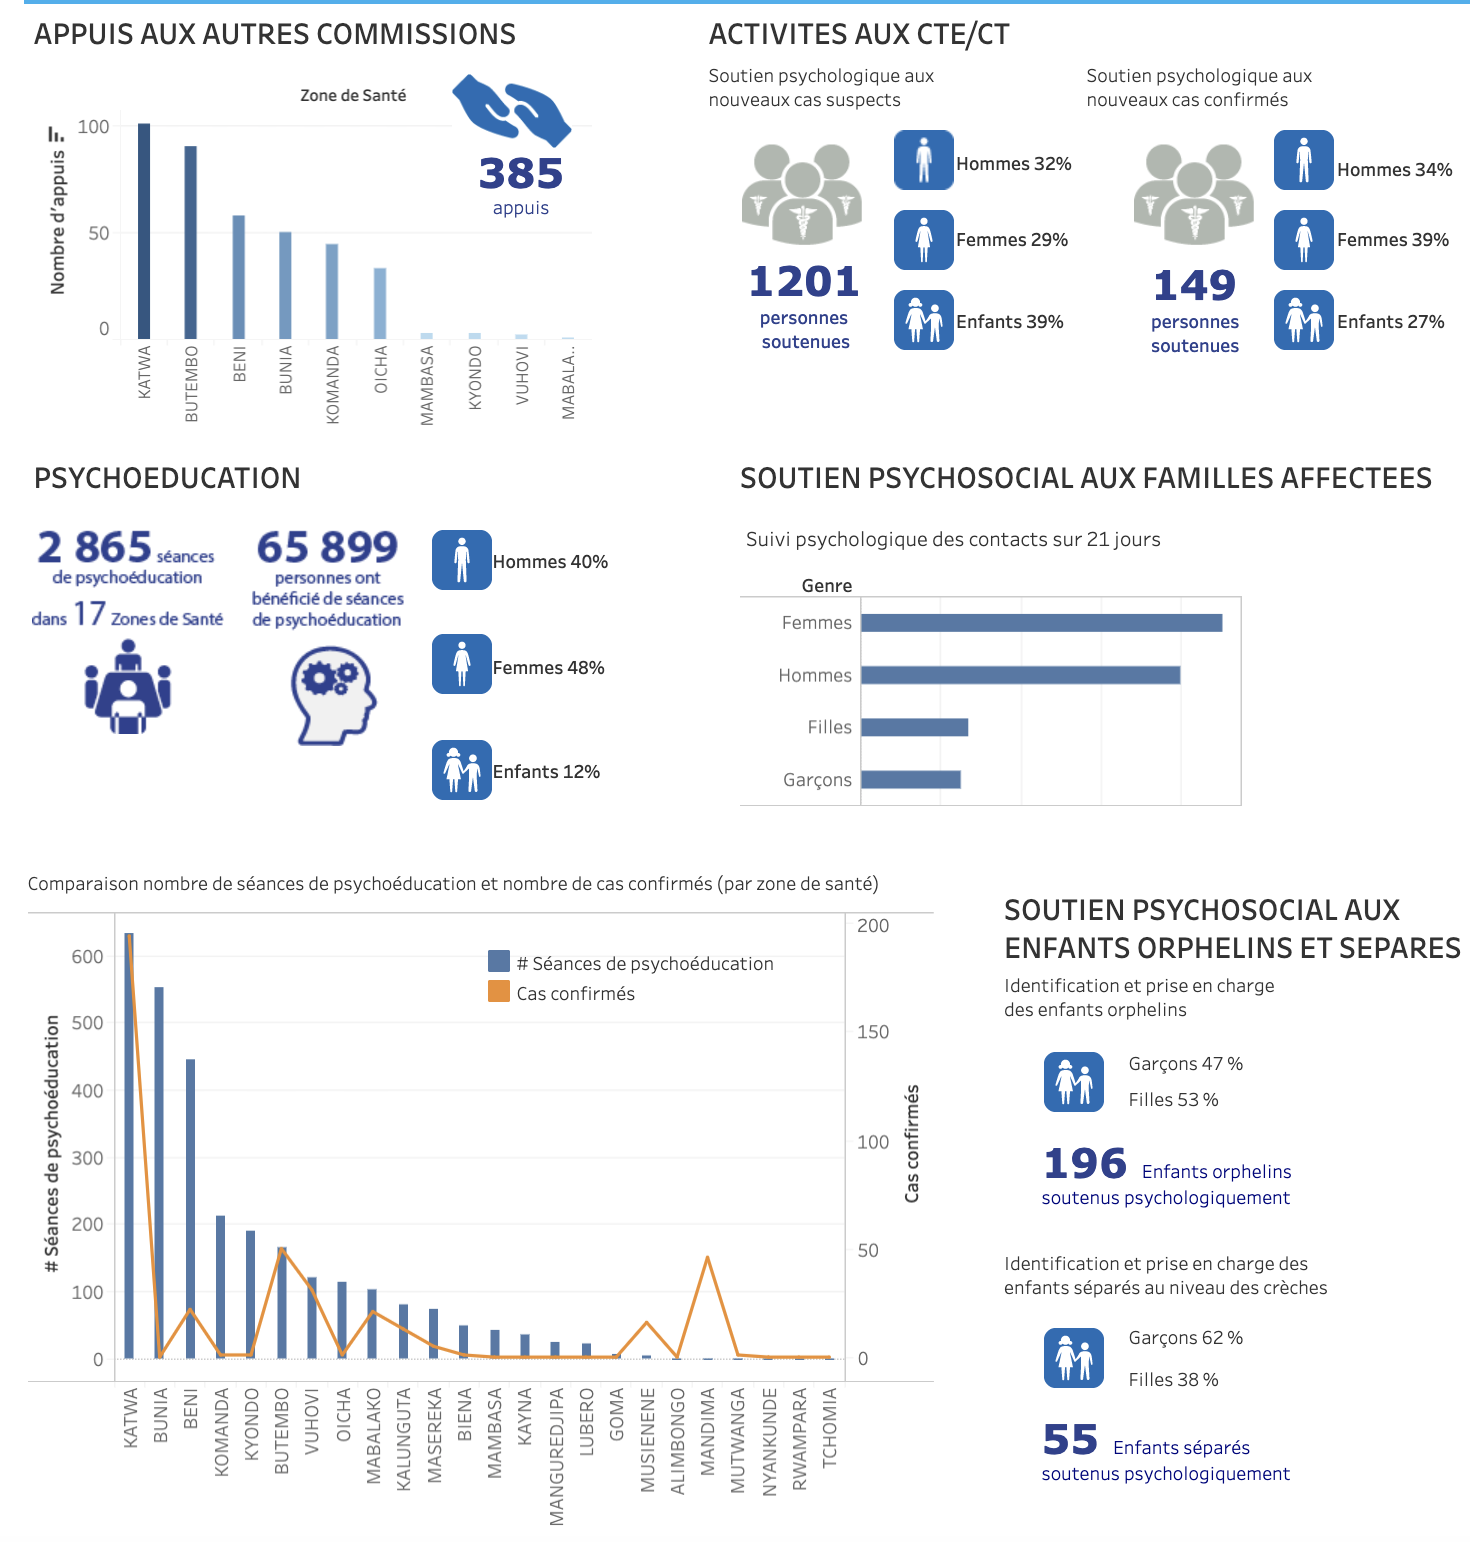 Monitoring the Ebola Response in the DRC - Psychosocial Dashboard